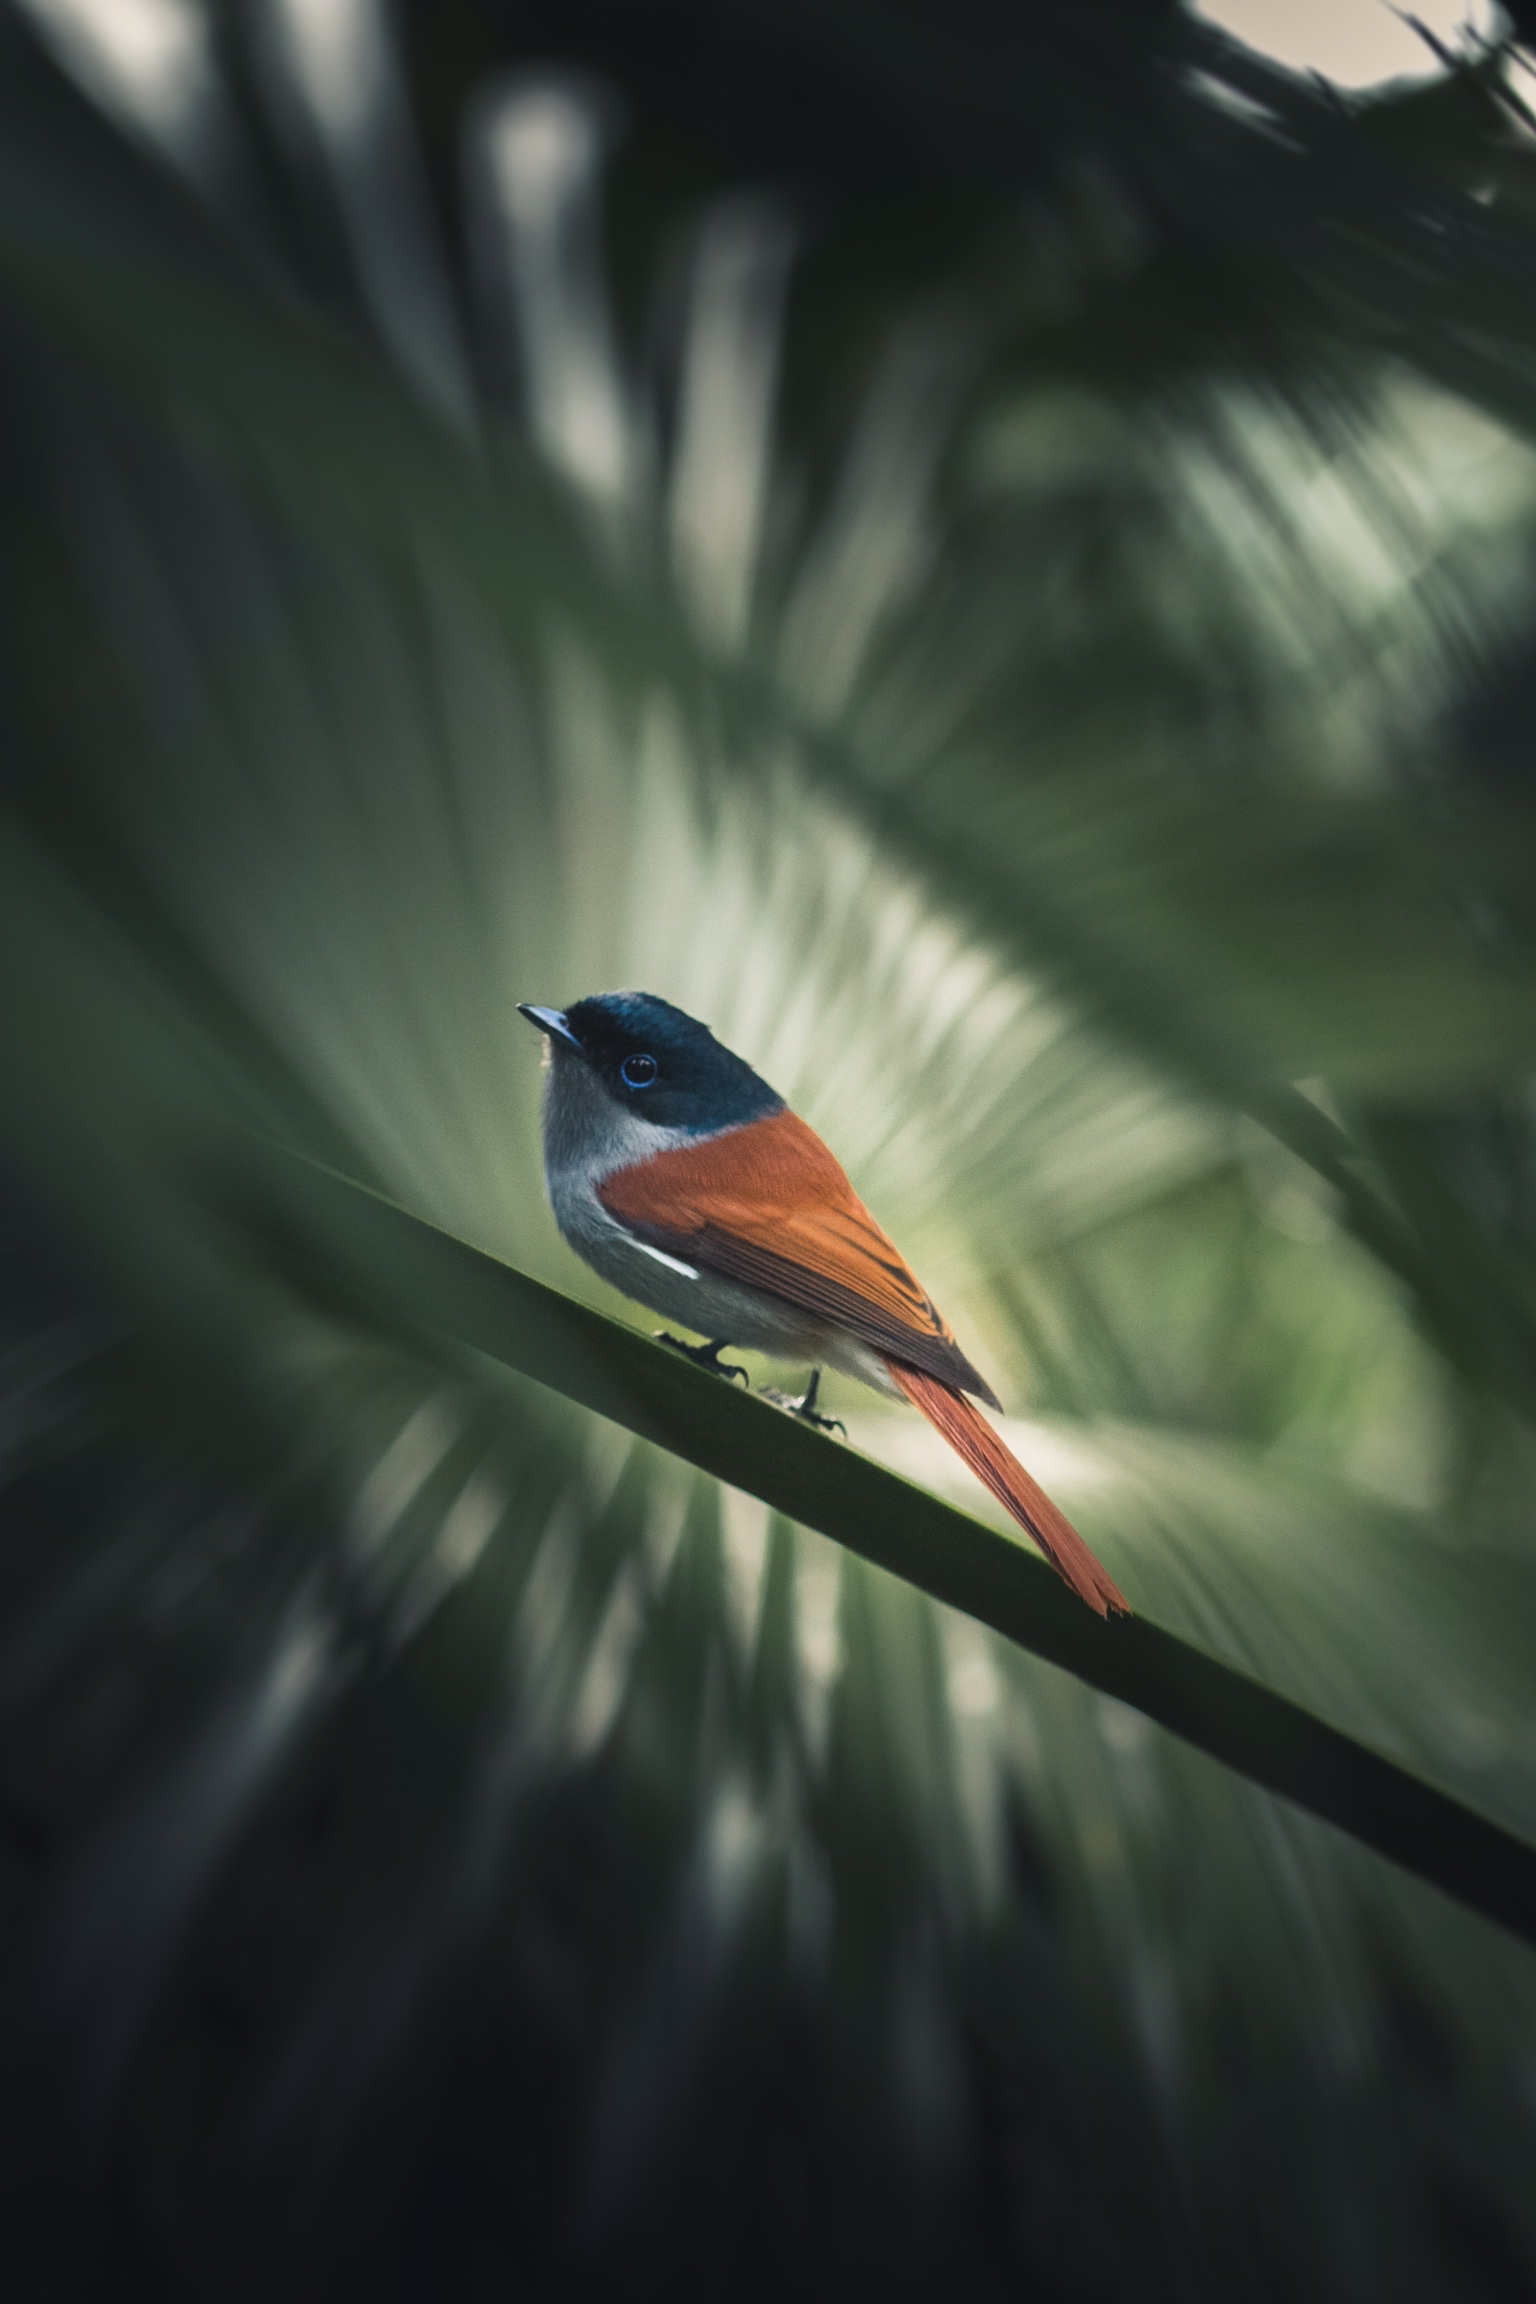 A Mascarene paradise flycatcher stands on a stem